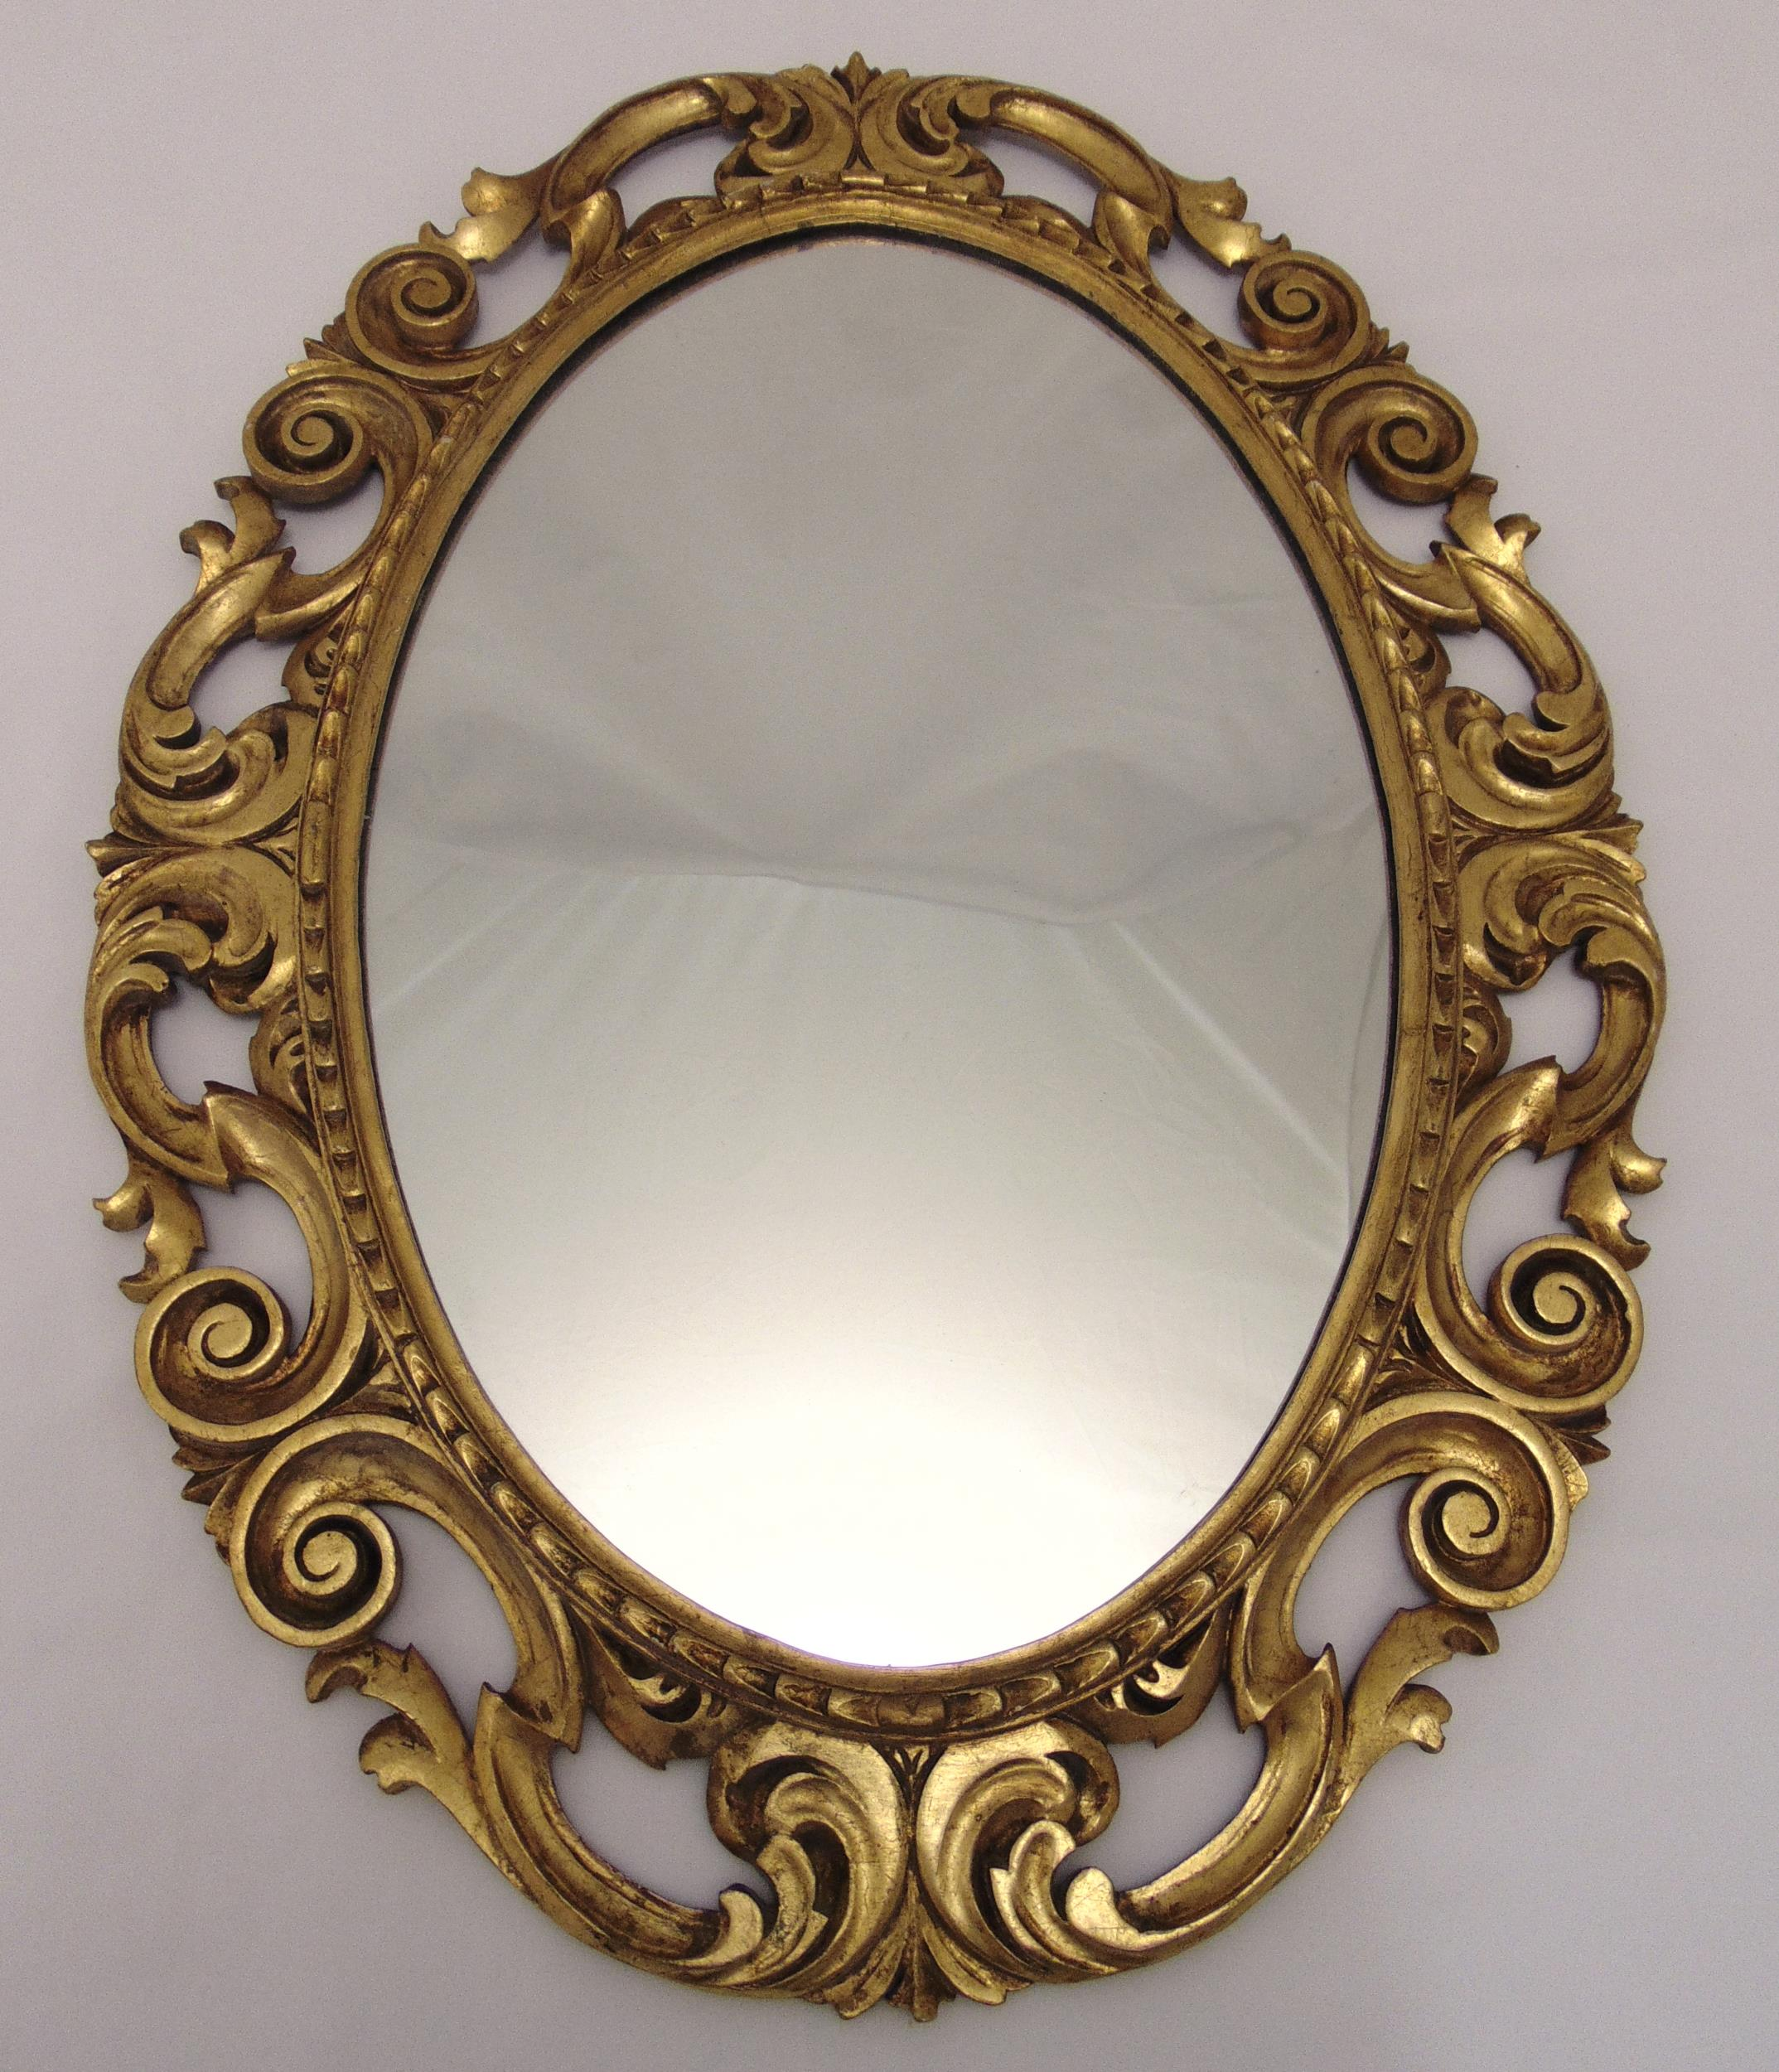 An oval gilded wooden wall mirror, pierced and carved with scrolls and stylised leaves, 77 x 57.5cm